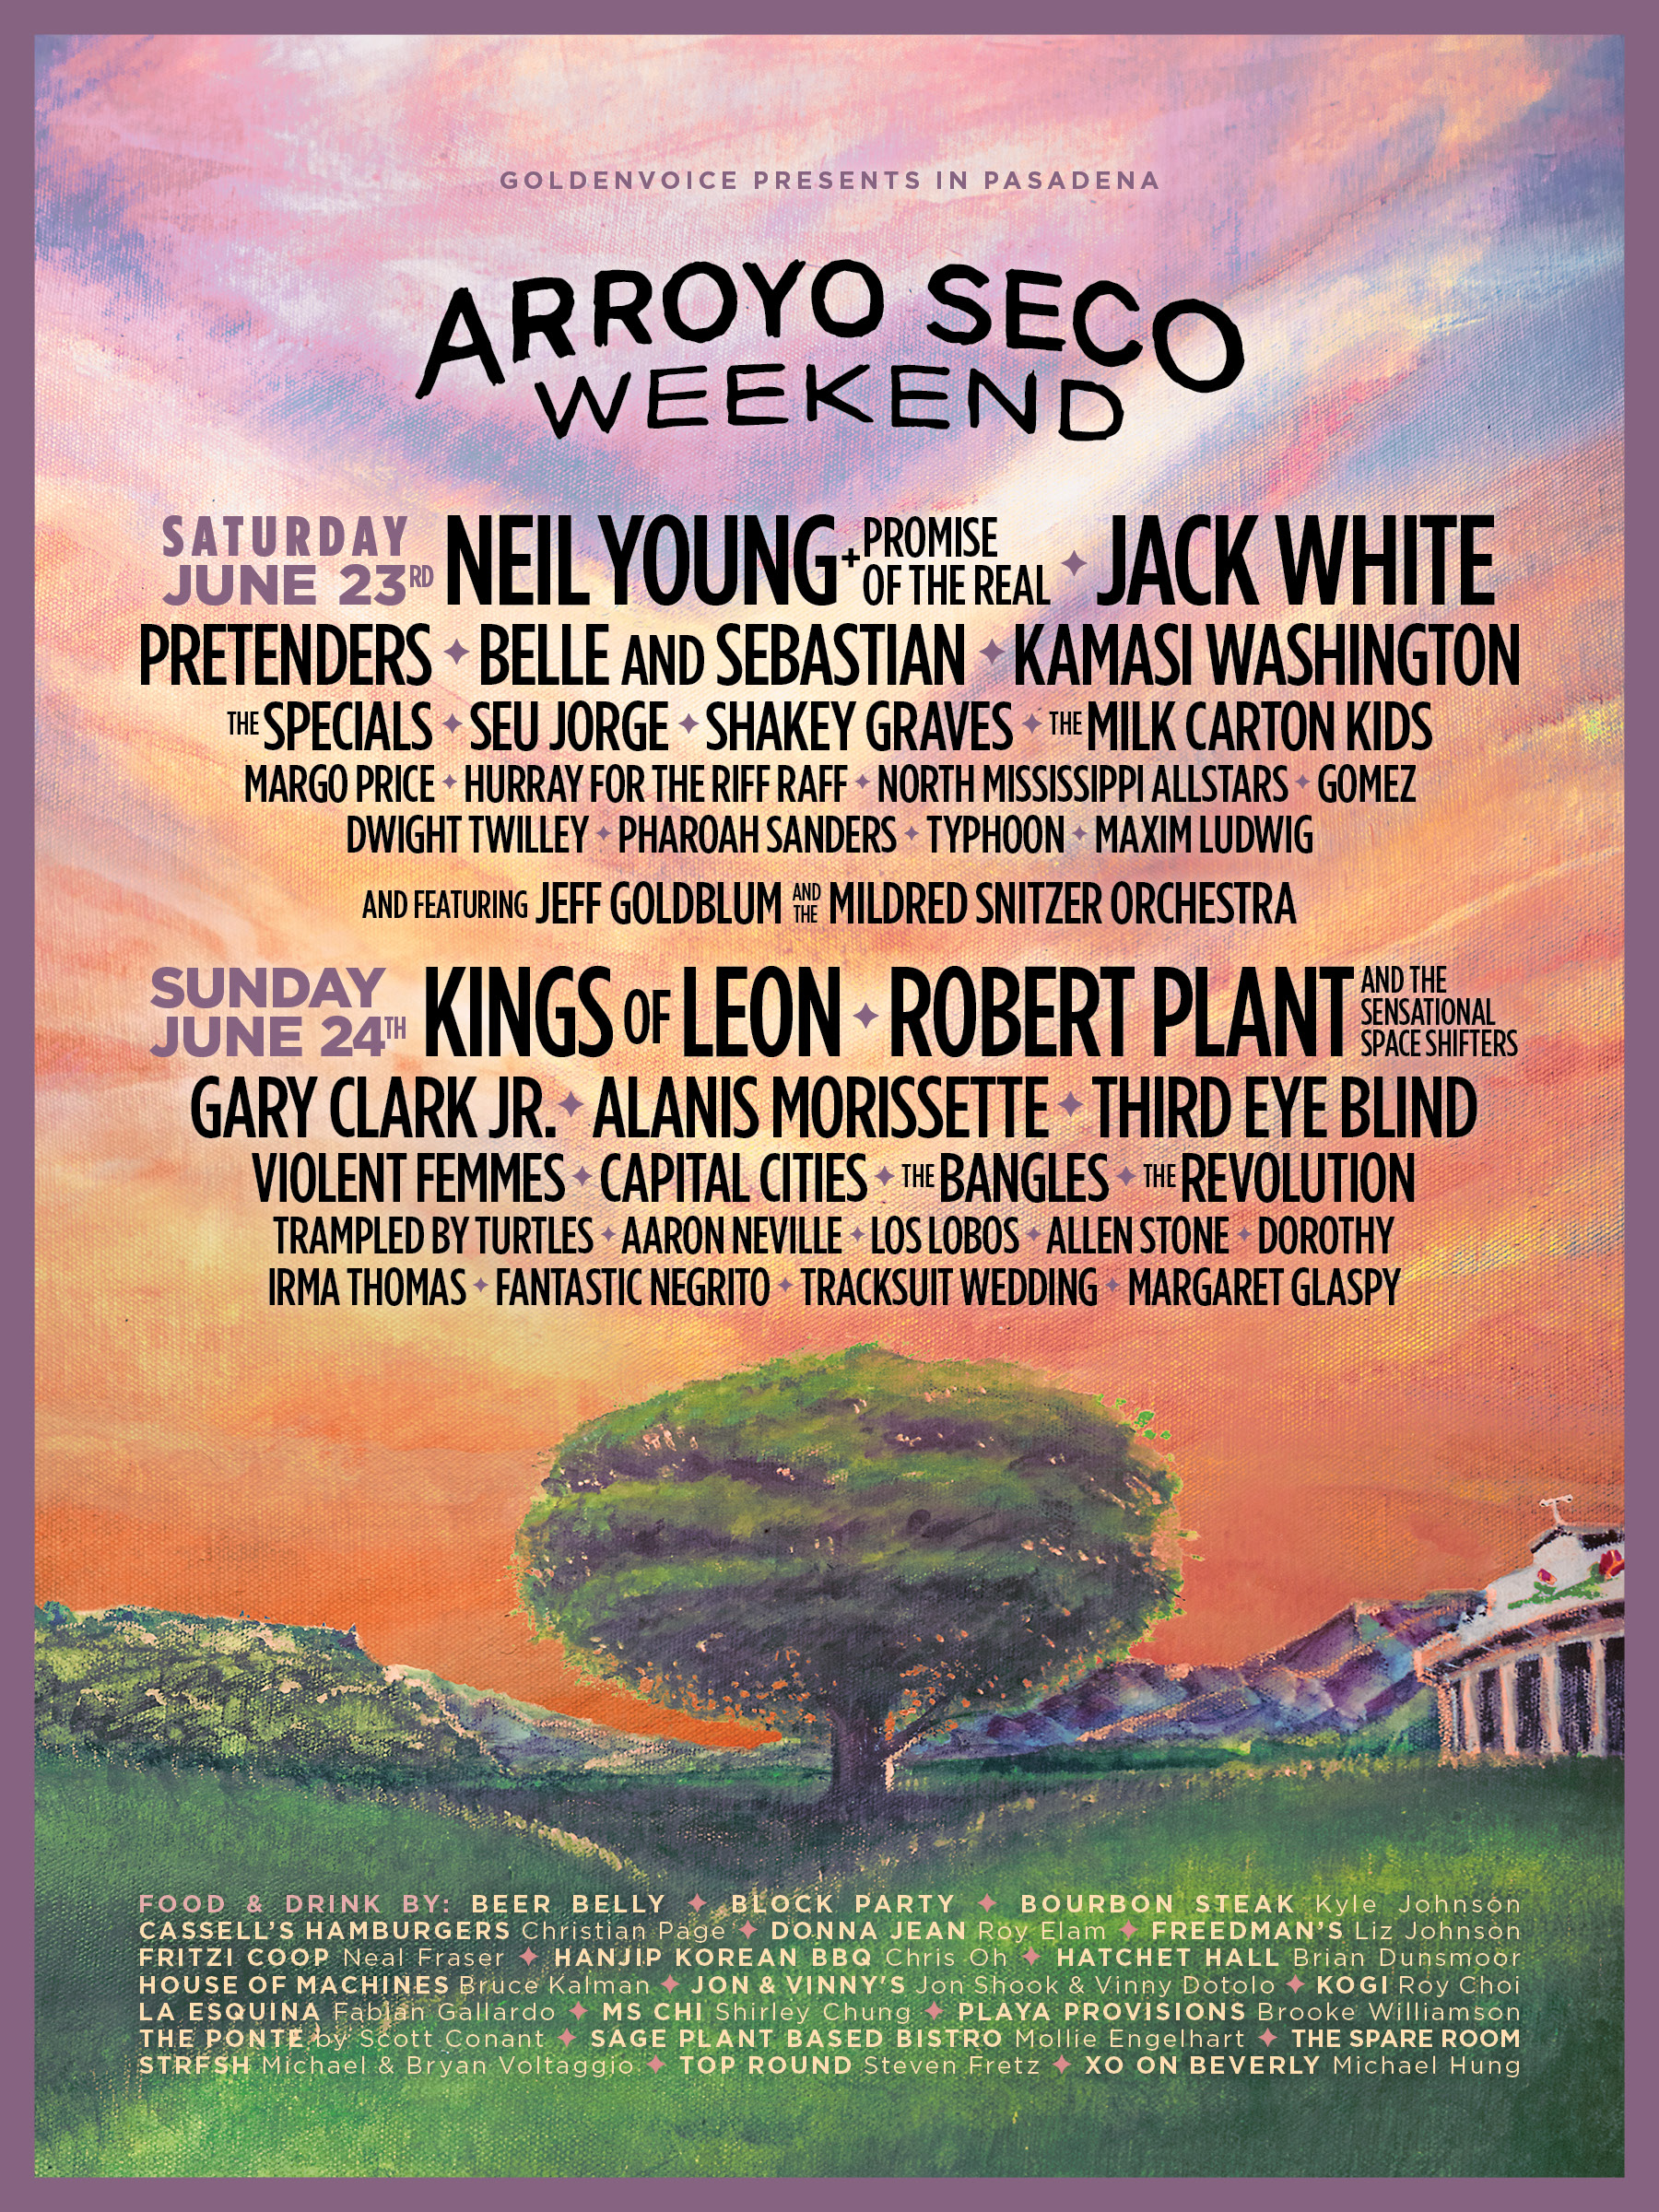 Arroyo Seco Weekend Poster 2018